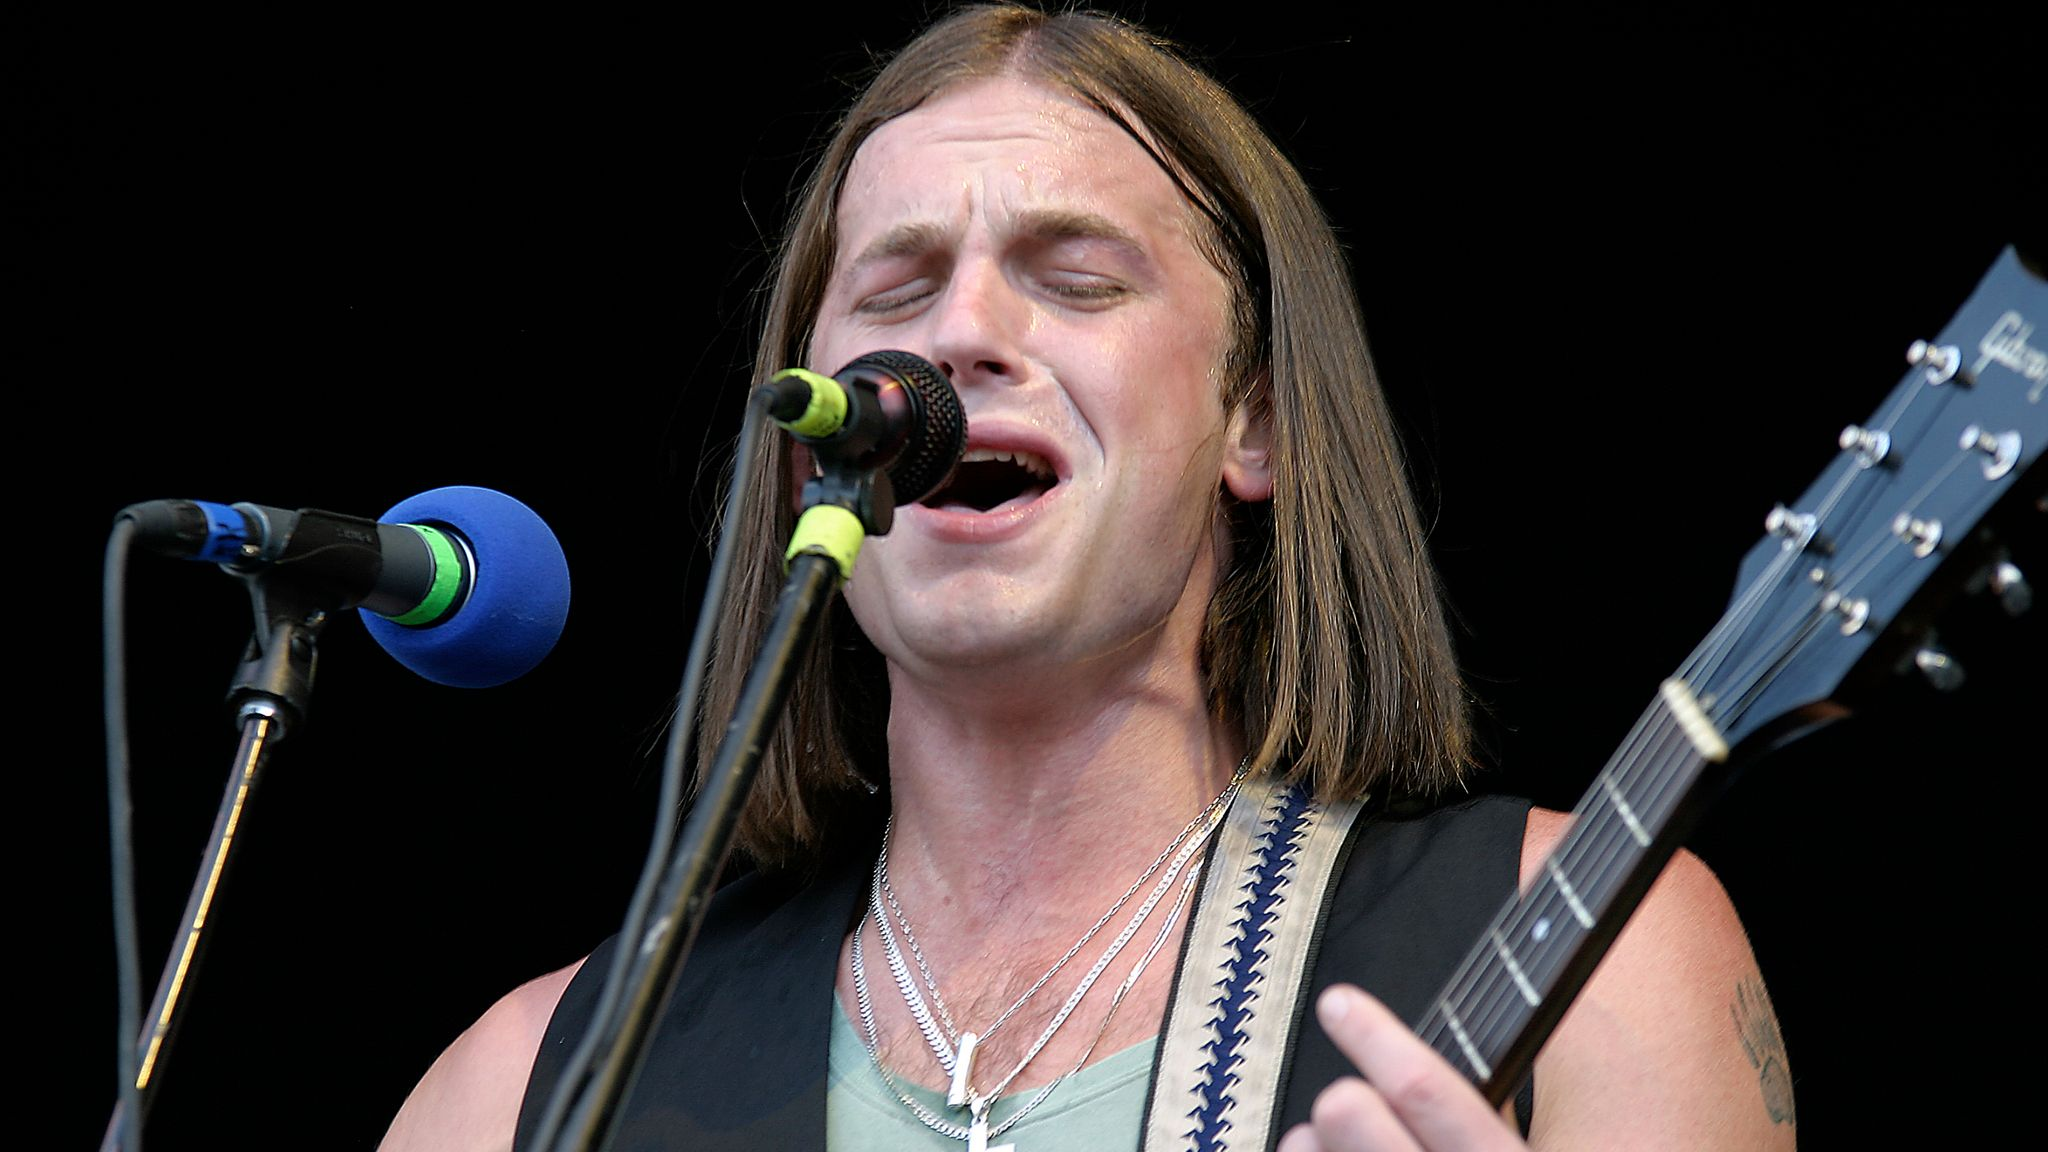 Caleb Followill of Kings Of Leon performs at the Bonnaroo Music Festival in Tennessee in 2007. Pic: AP